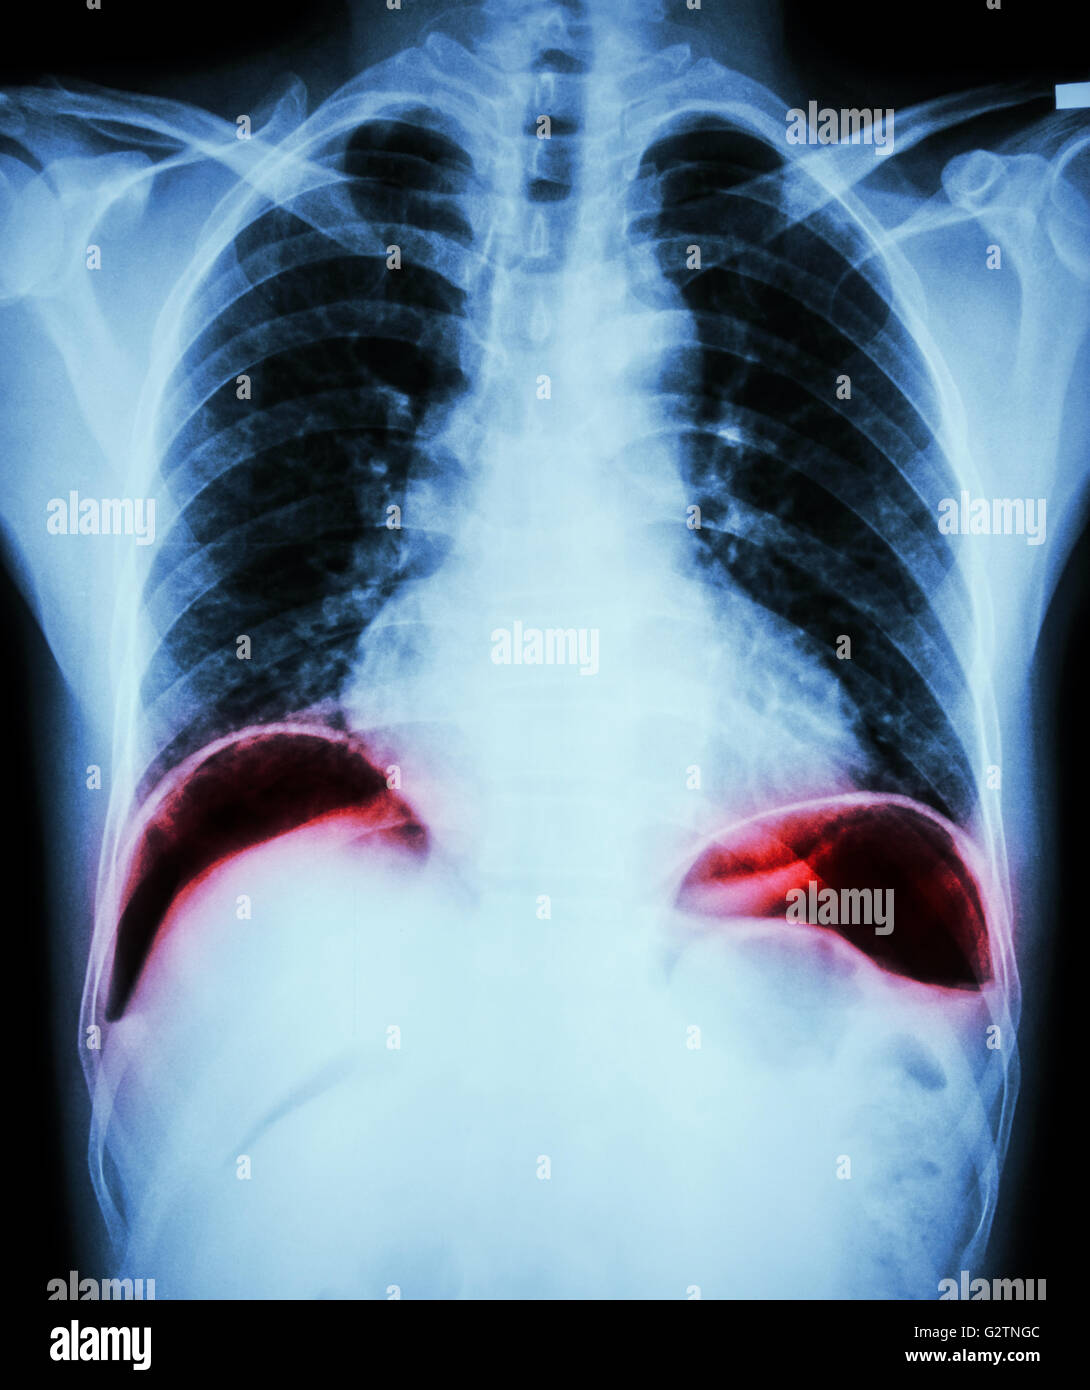 Peptic Ulcer Perforate Film Chest X Ray Show Free Air Under Dome Stock Photo Alamy